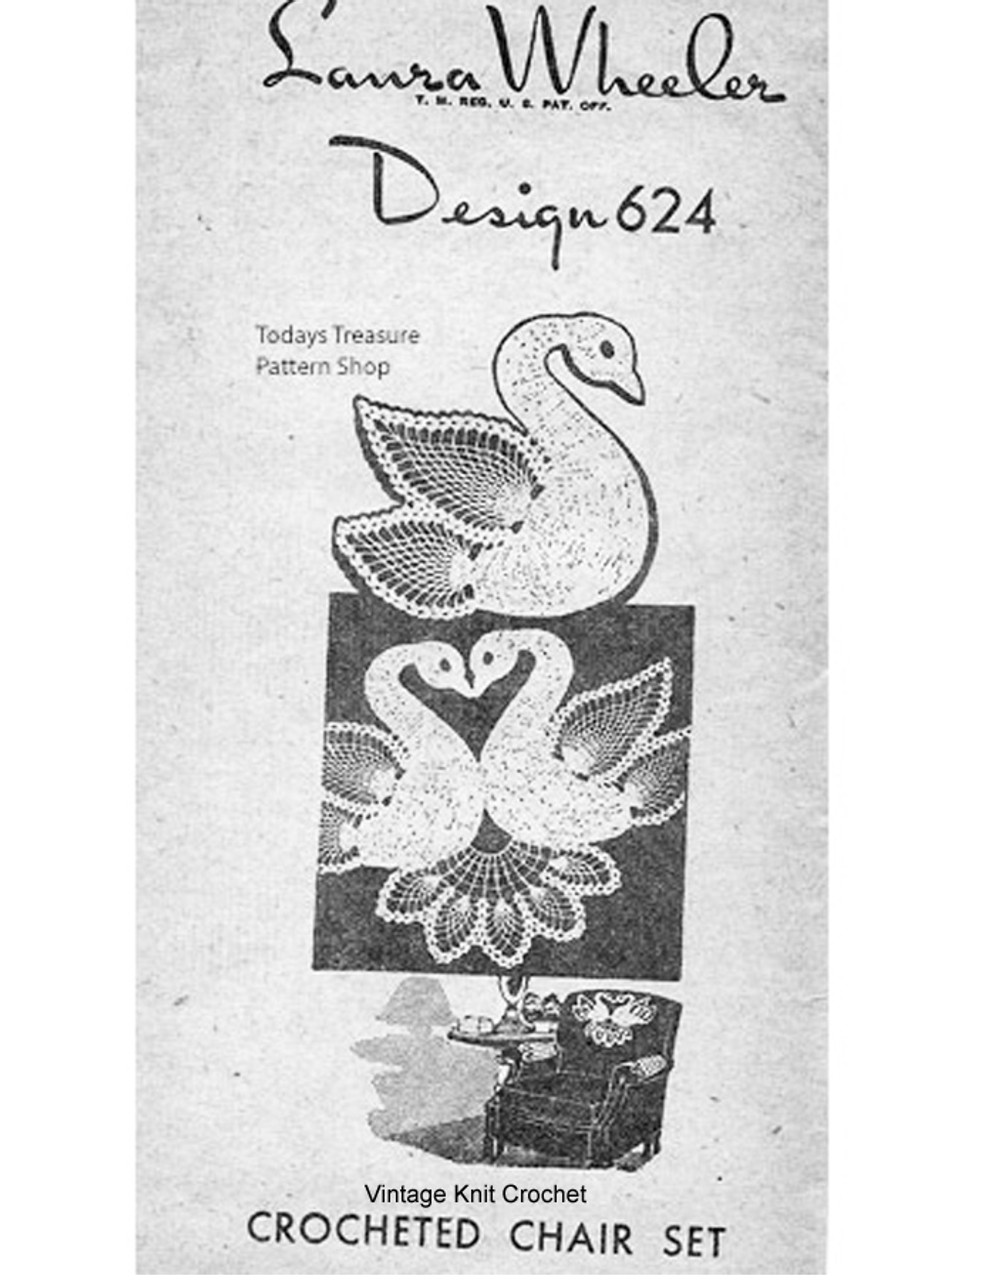 Crochet Swan Chair Doily Pattern Set, Mail Order 624